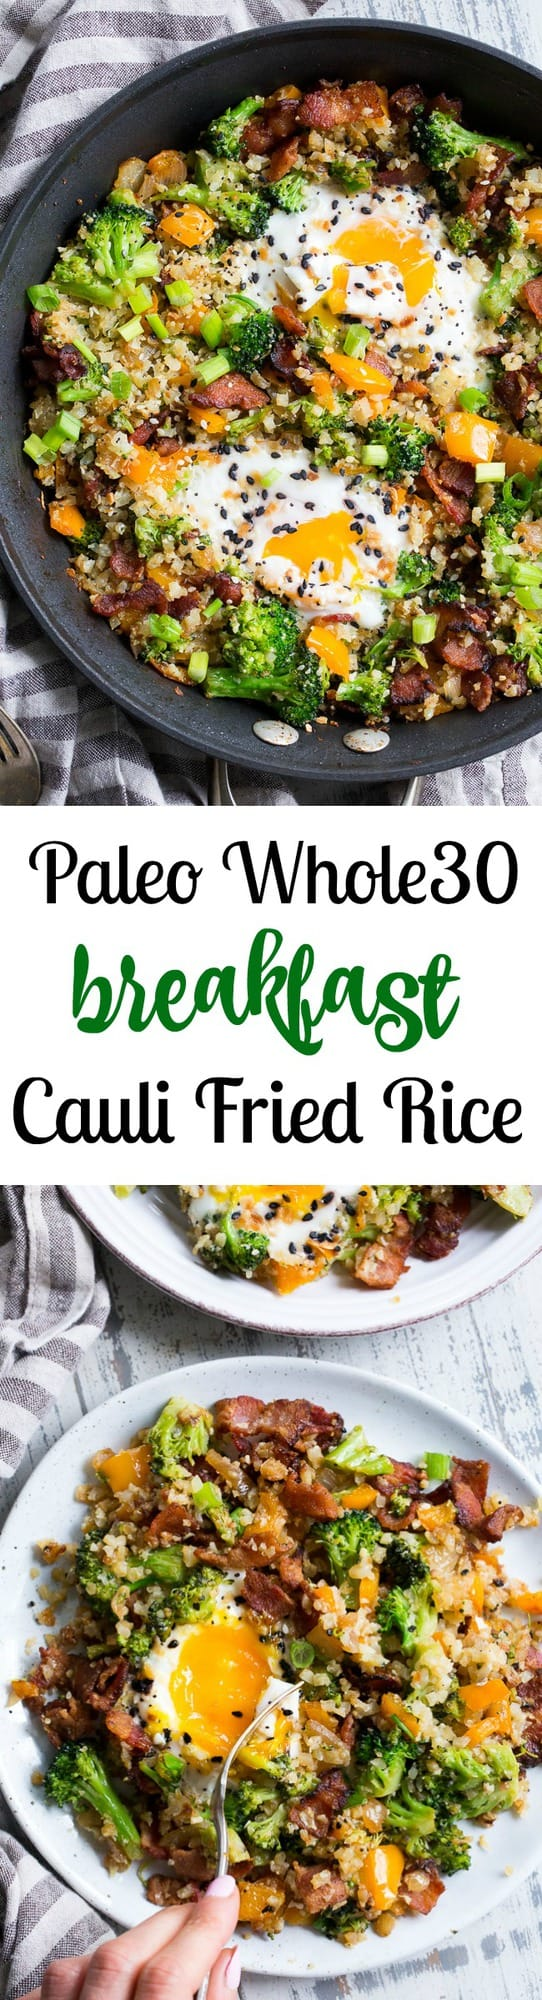 This breakfast cauliflower fried rice is savory, filling, and ridiculously tasty! It's packed with veggies, bacon, seasoned just right, and topped with perfectly cooked eggs. This breakfast anytime meal is also Paleo, Whole30, low carb and keto friendly!